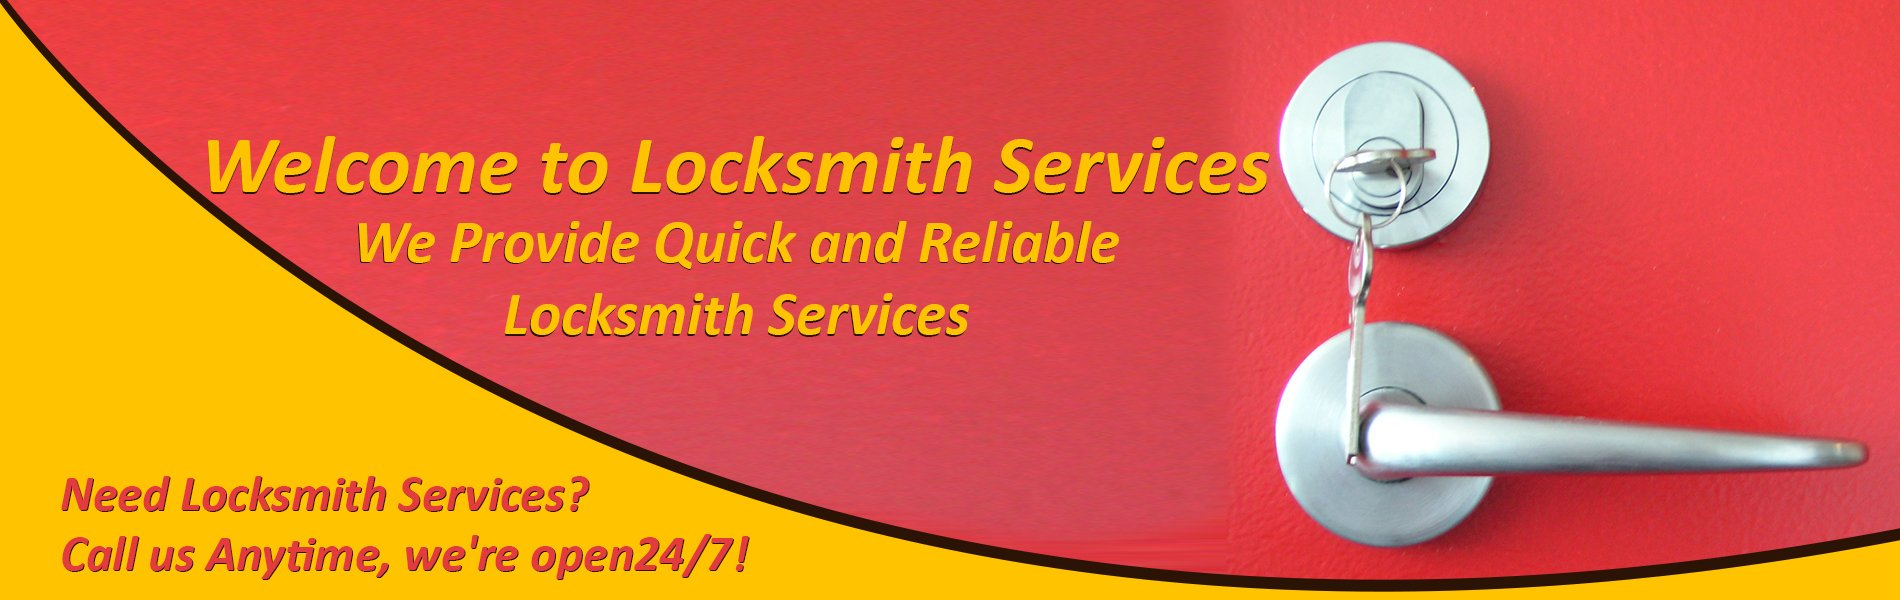 San Francisco Central Locksmith San Francisco, CA 415-842-3928